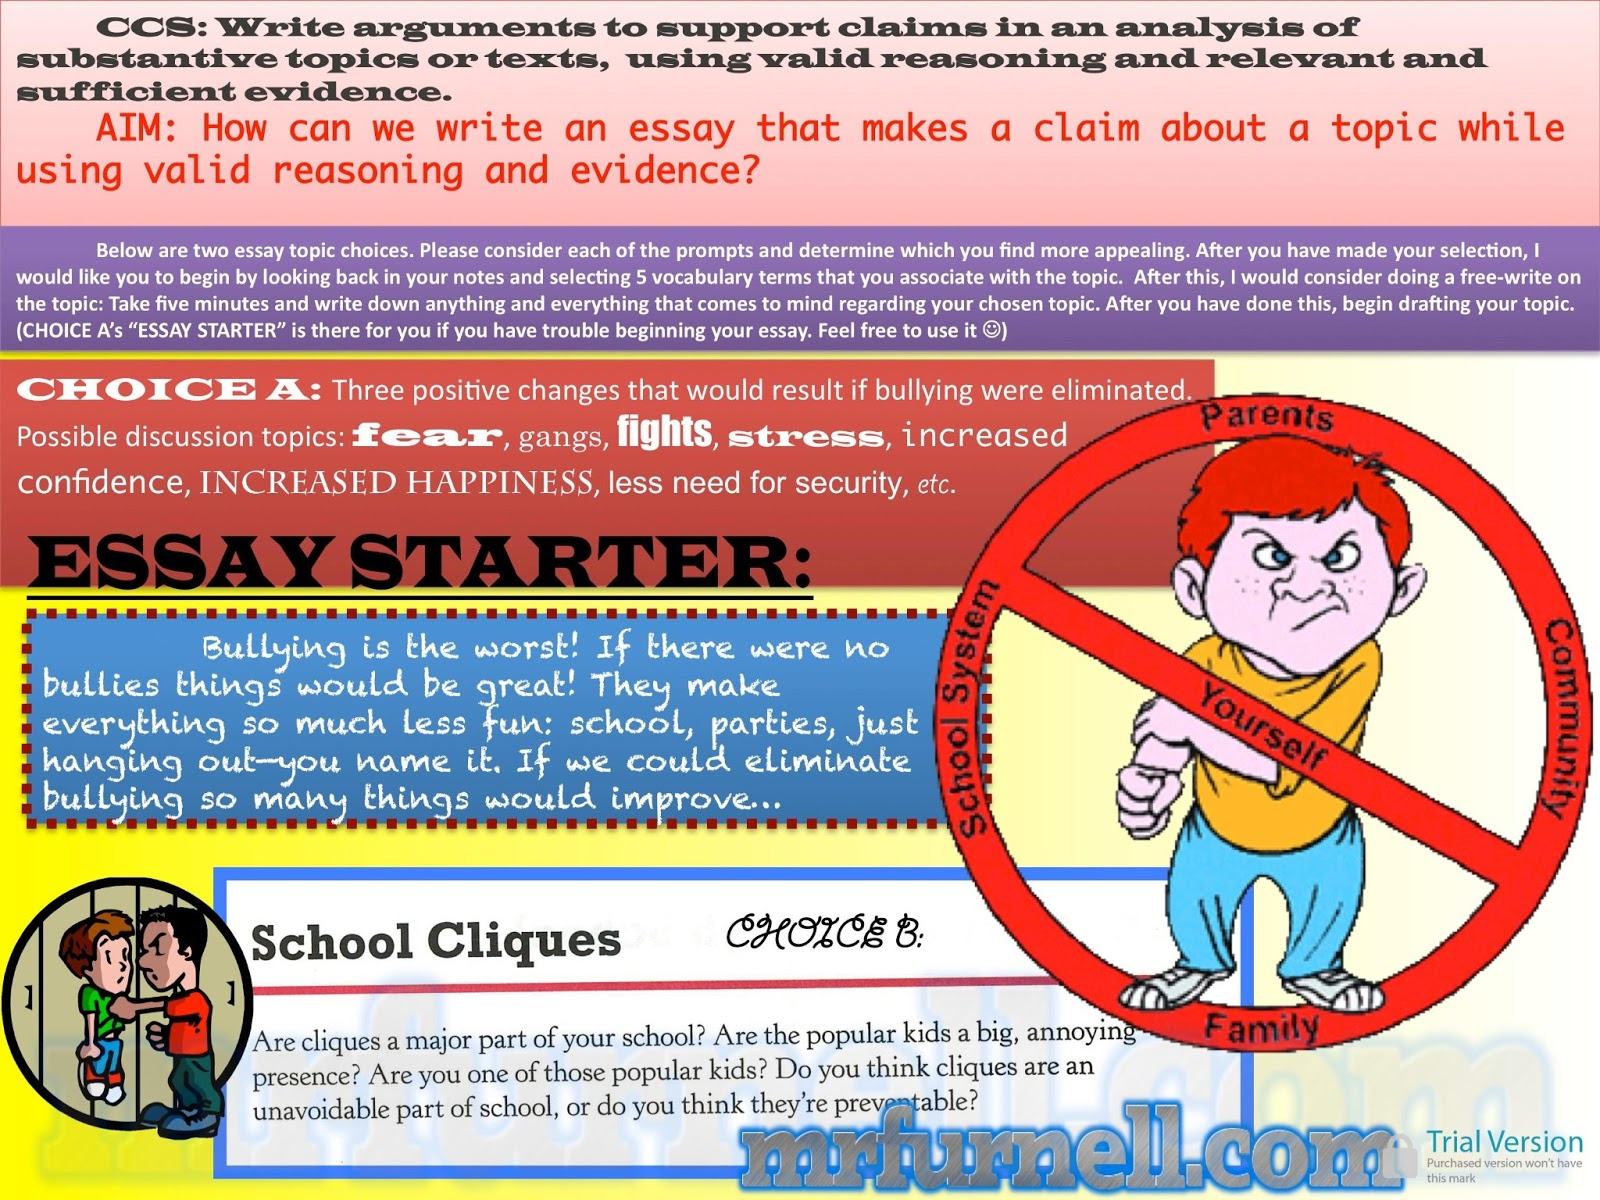 bullying essay prompts Bullying essay: causes and effects of bullying in schools bullying in schools bullying occurrences have been a perpetual problem in schools and among teenagers.